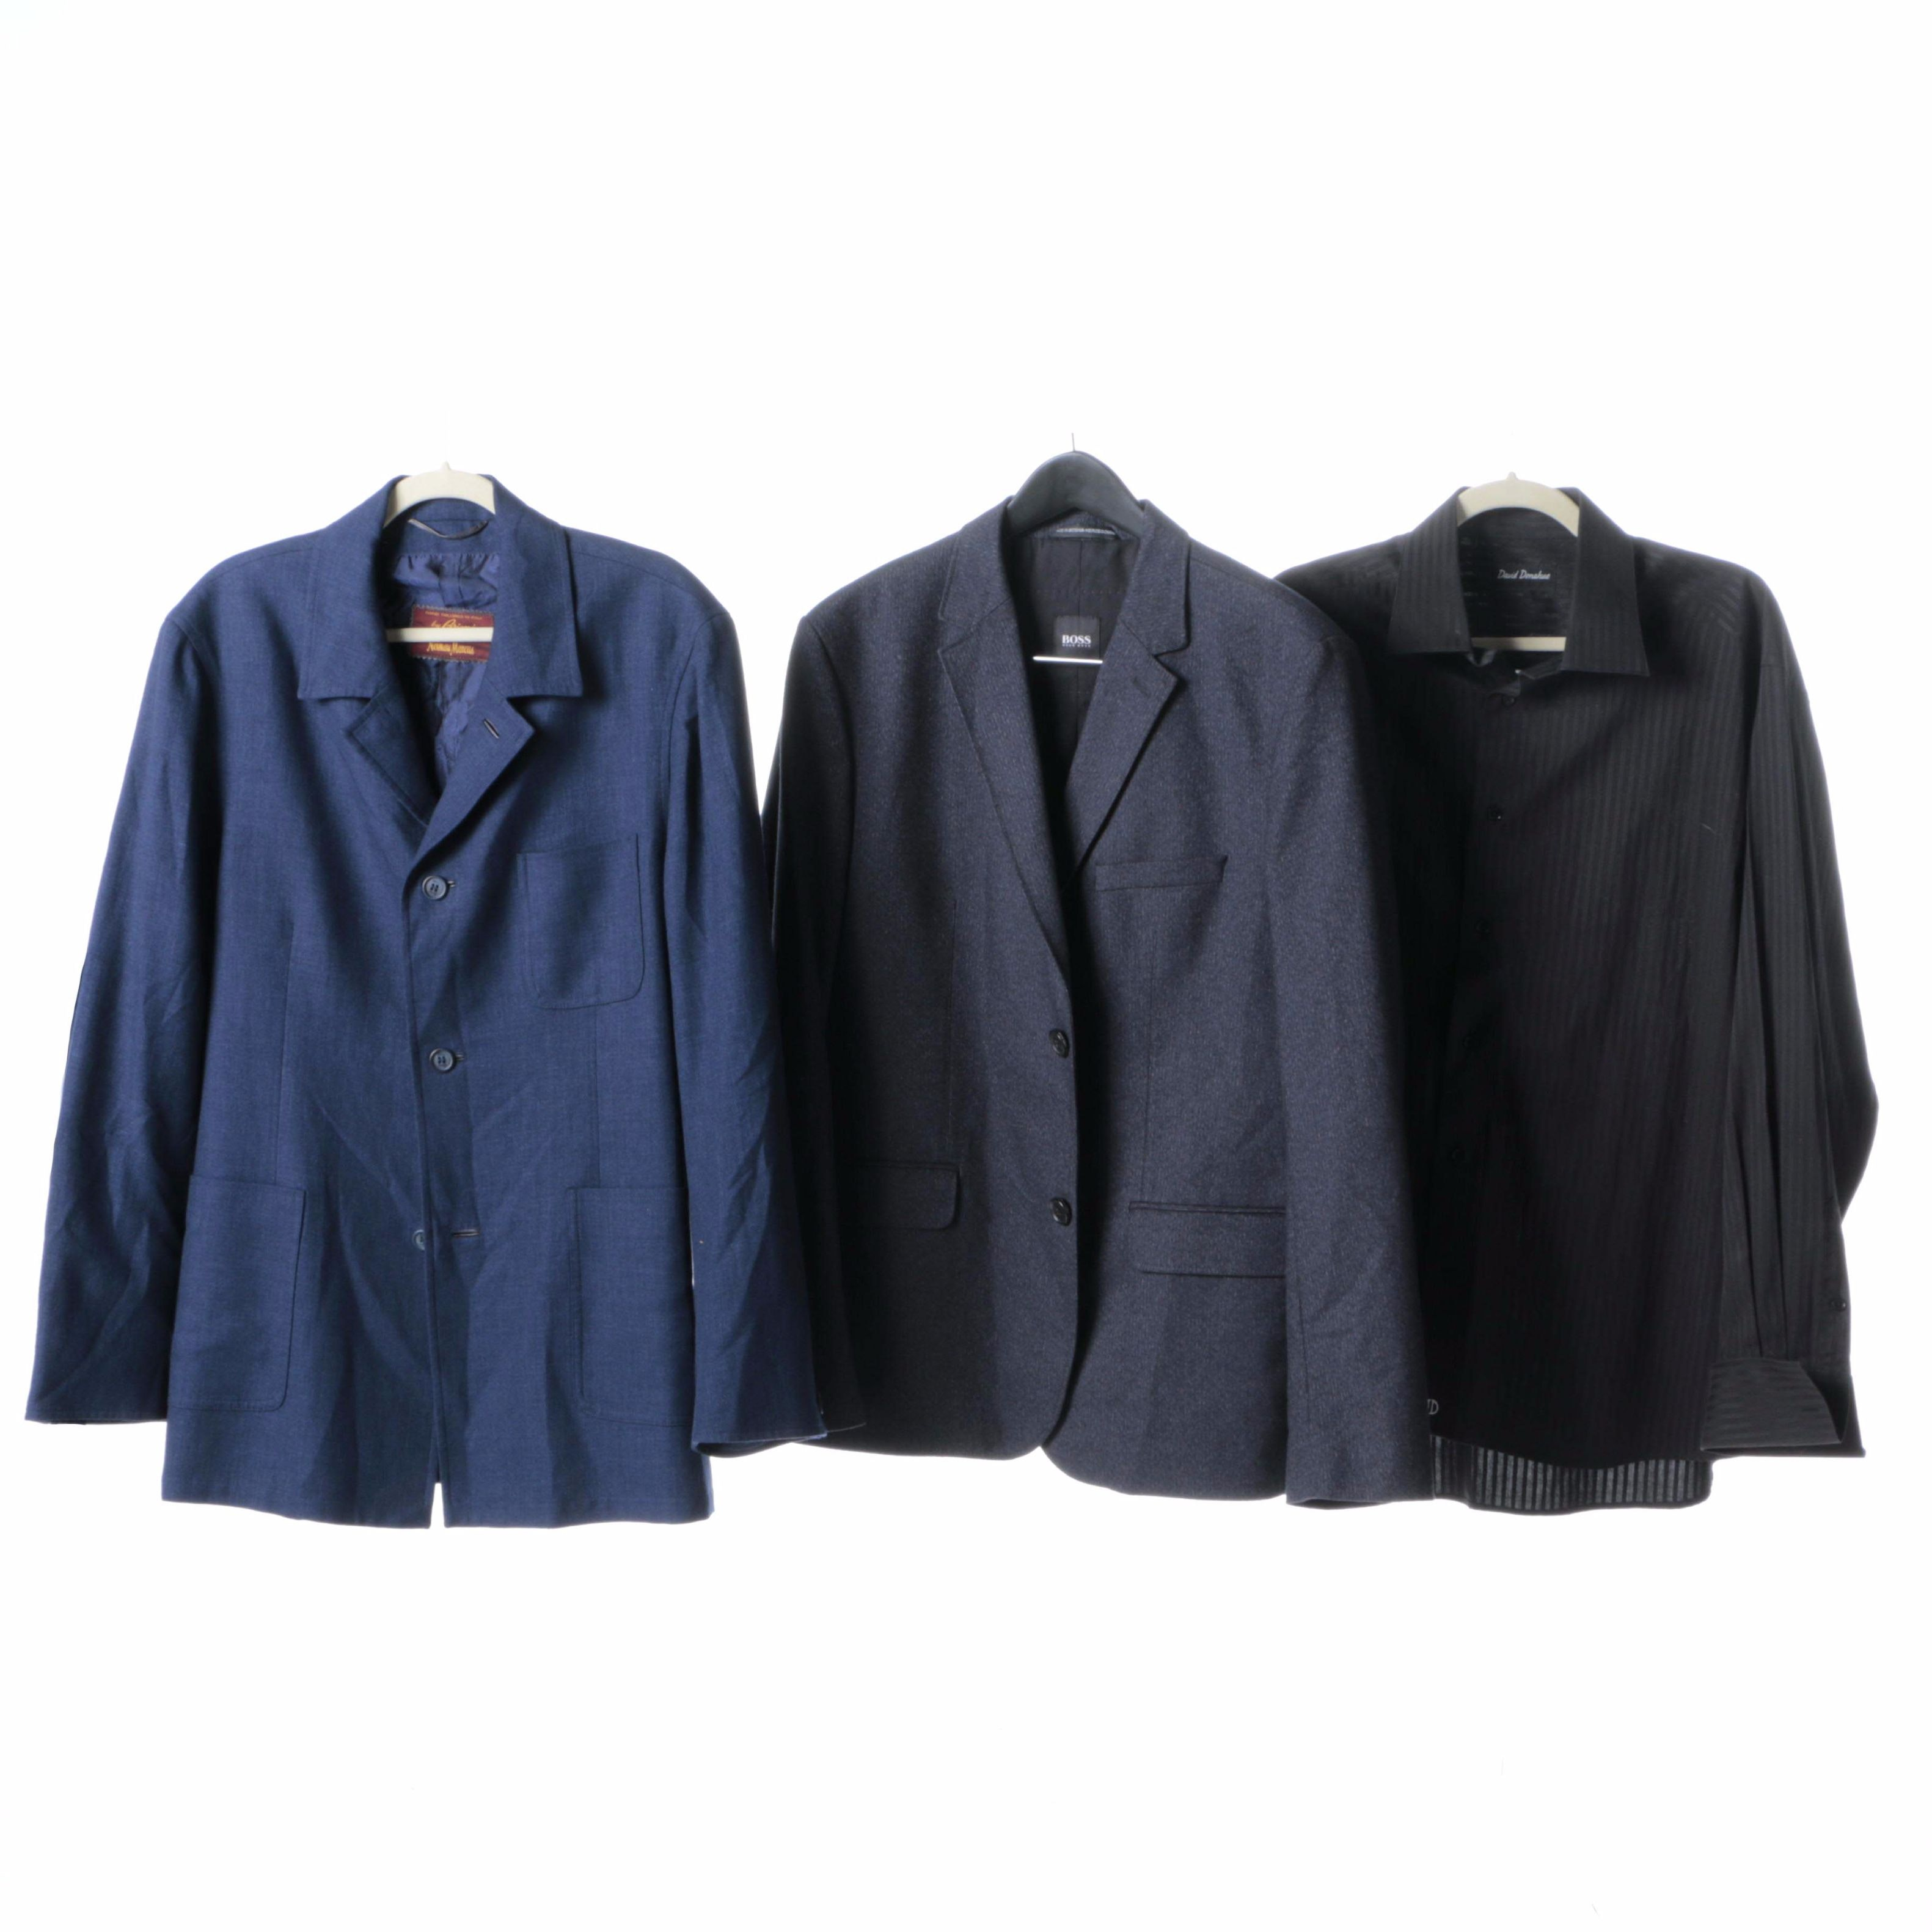 Collection of Three Men's Jackets